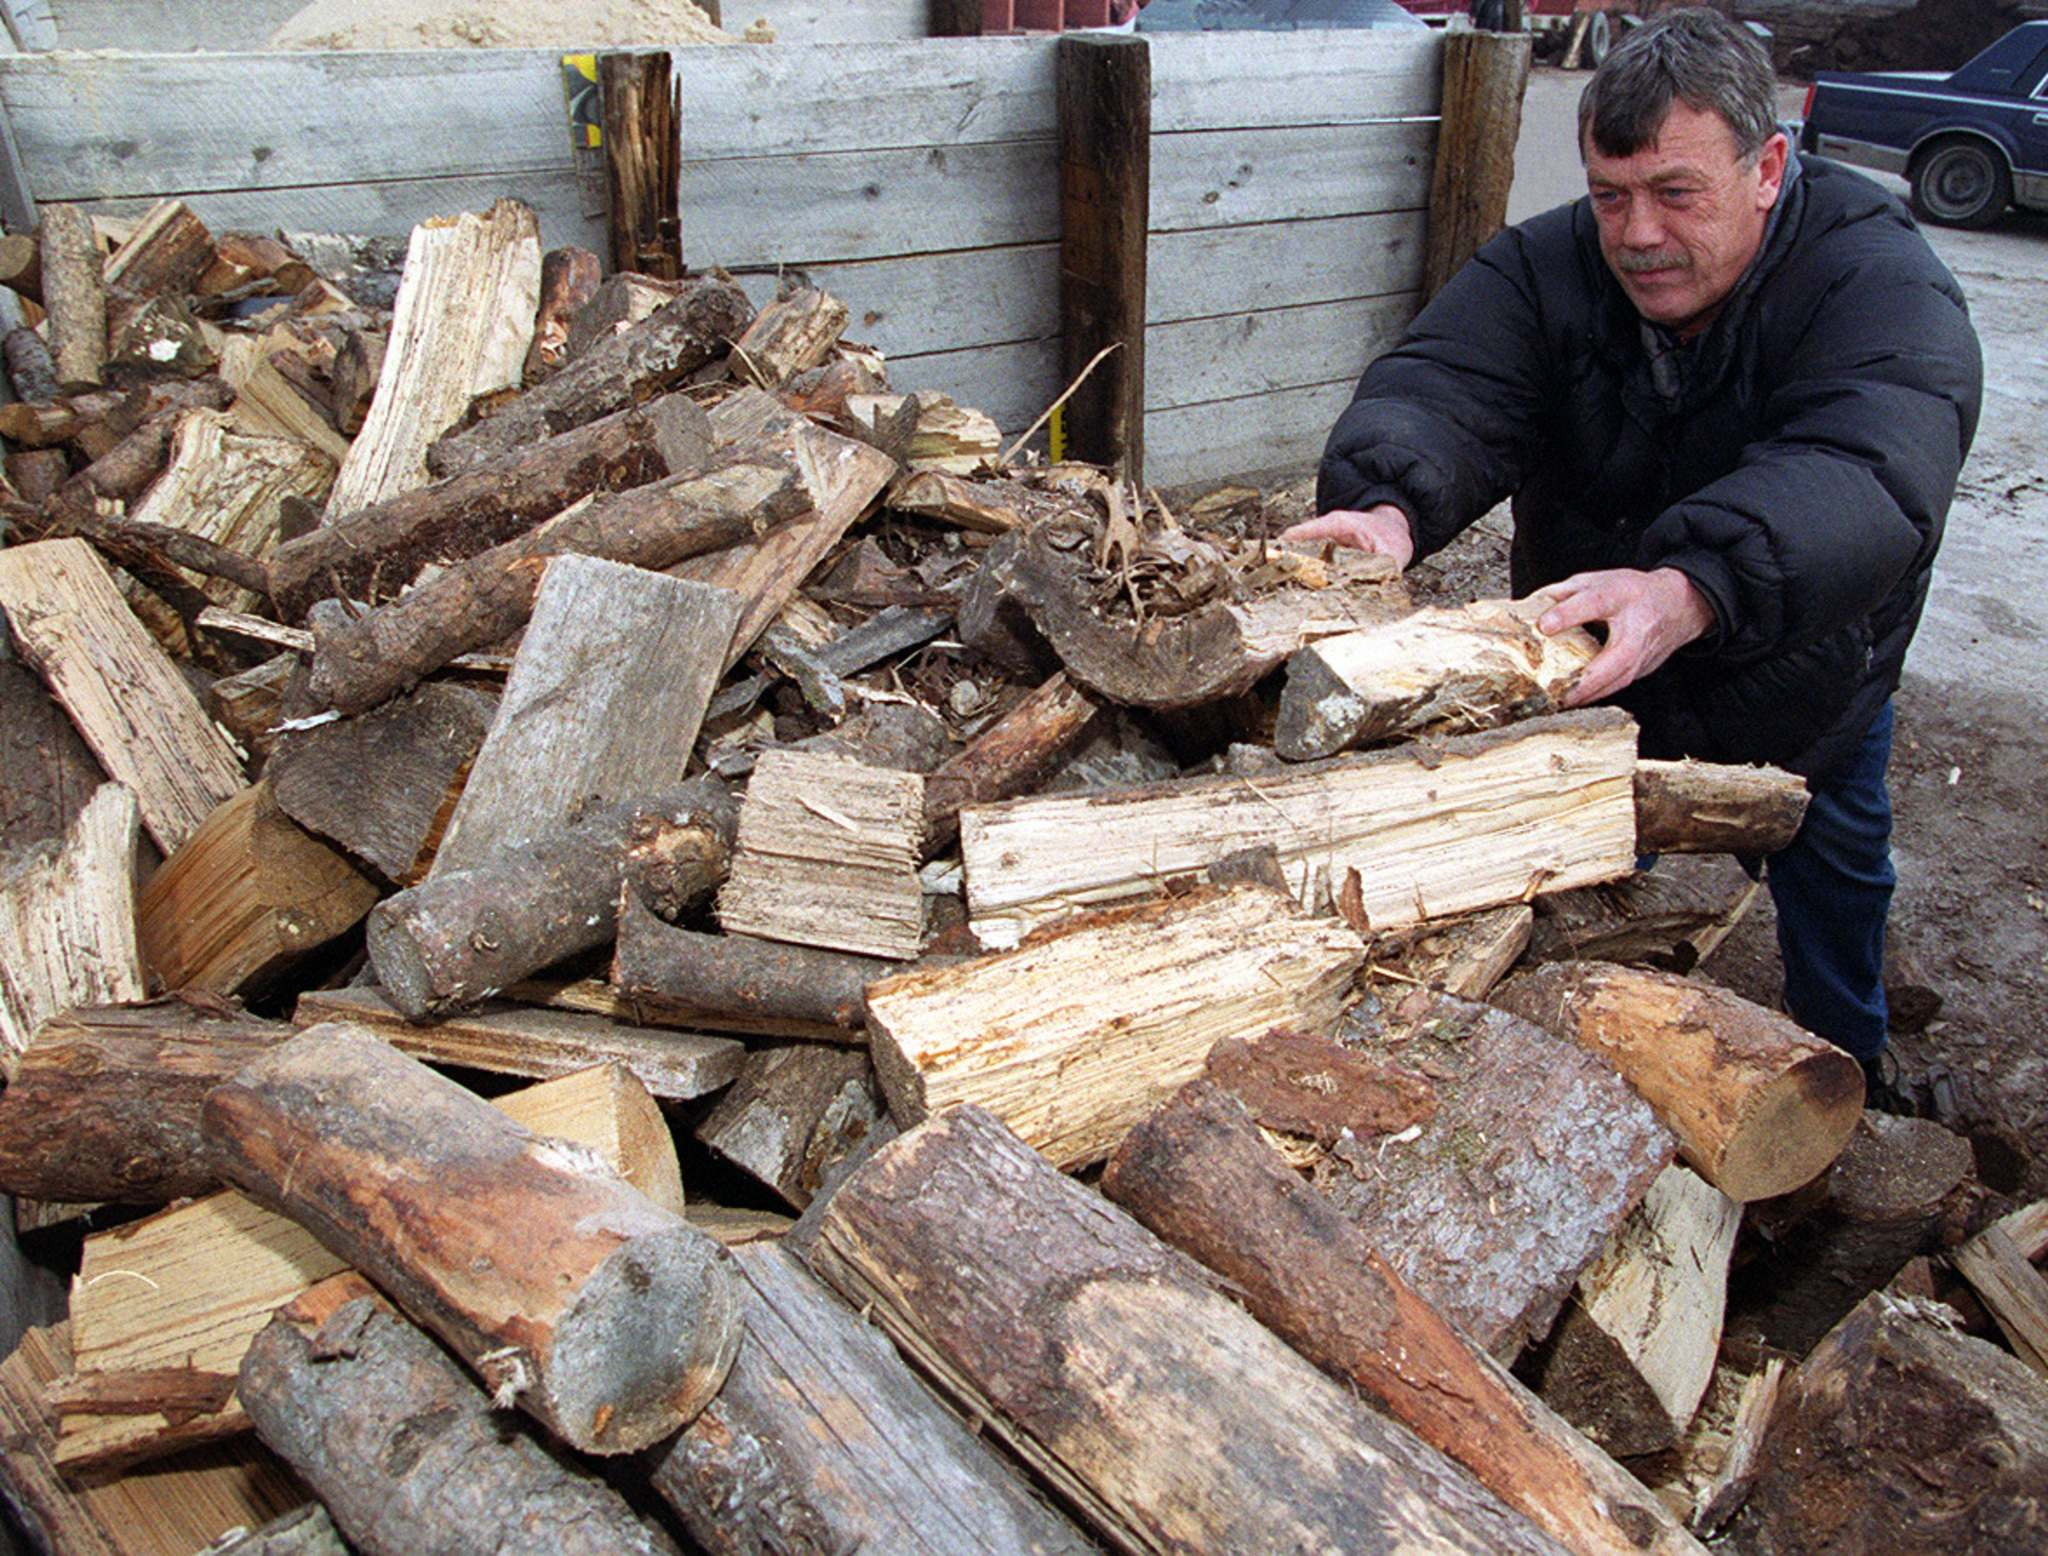 KEN GIGLIOTTI / WINNIPEG FREE PRESS FILES</p><p>Randy Krasnesky of Chuck's Landscaping on Main Street sold firewood to people preparing for possible Y2K heat and electricity failures. </p>